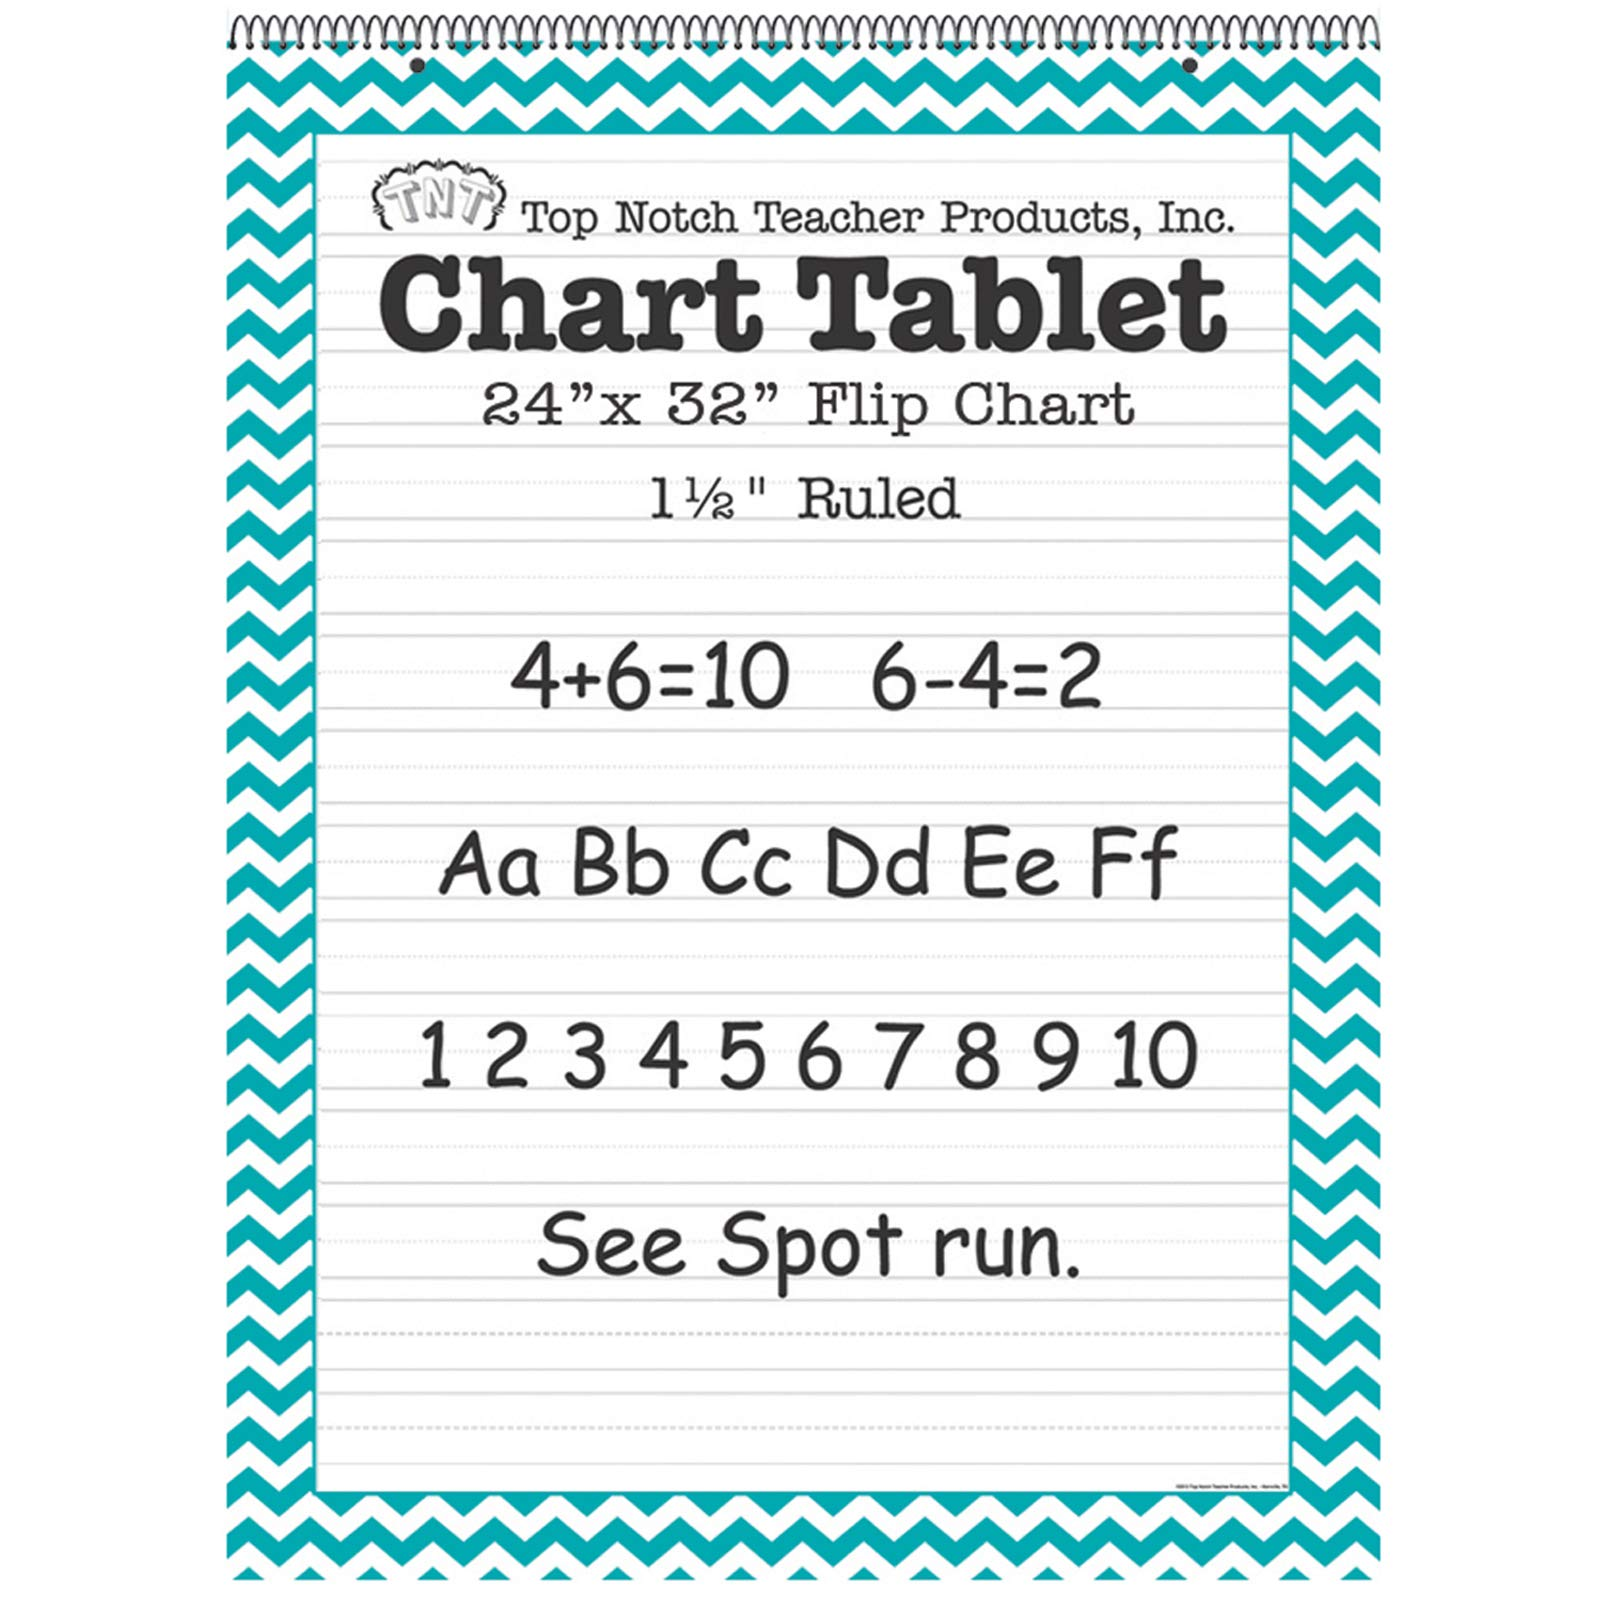 Top Notch Teacher Products TOP3859BN Chart Tablet, 24'' x 32'', 1-1/2'' Ruled, Teal Chevron, 25 Sheets, Pack of 2 by Top Notch Teacher Products